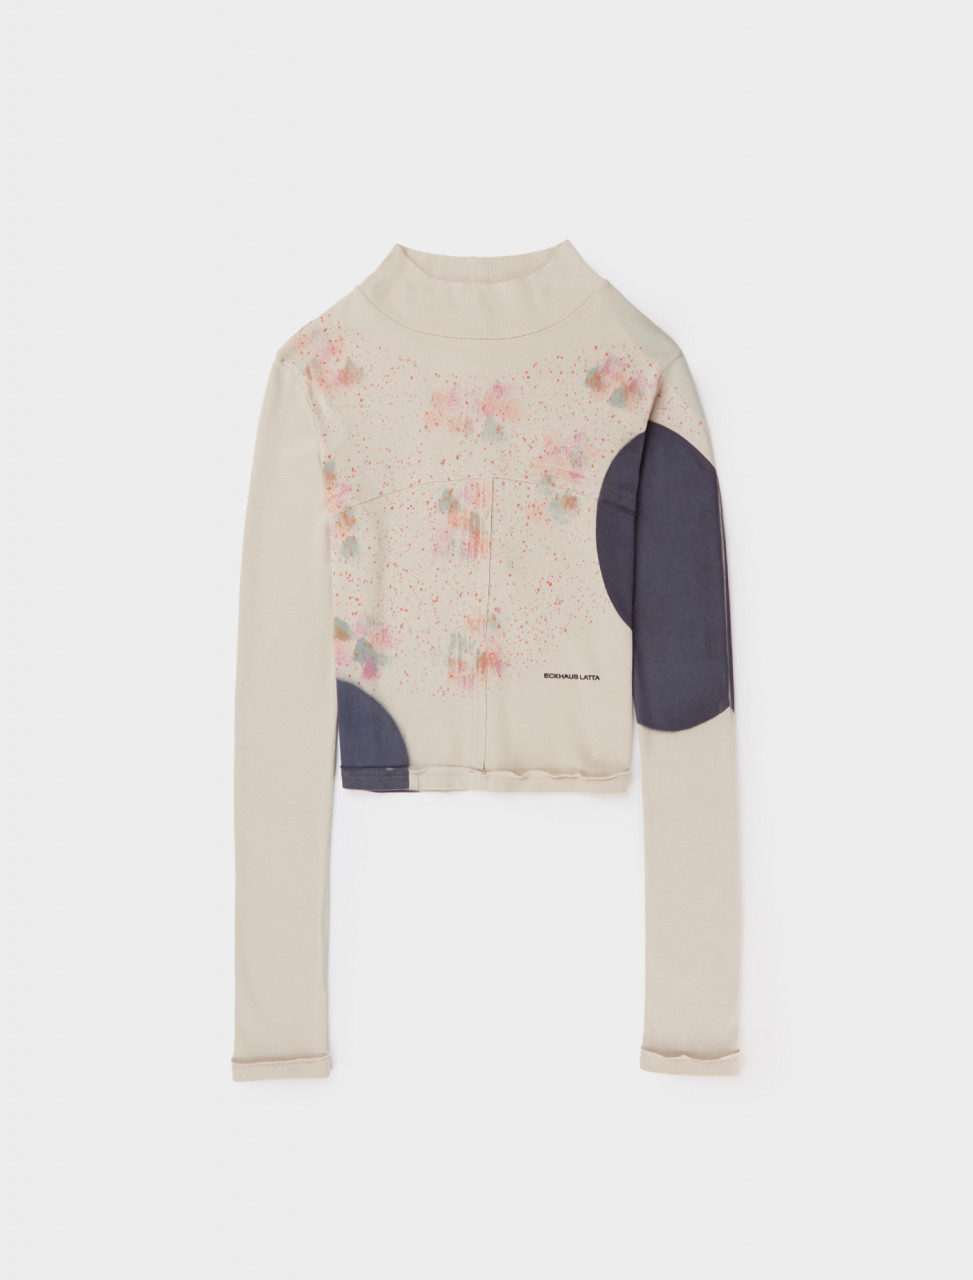 Front view of Eckhaus Latta Lapped Baby Turtle Neck